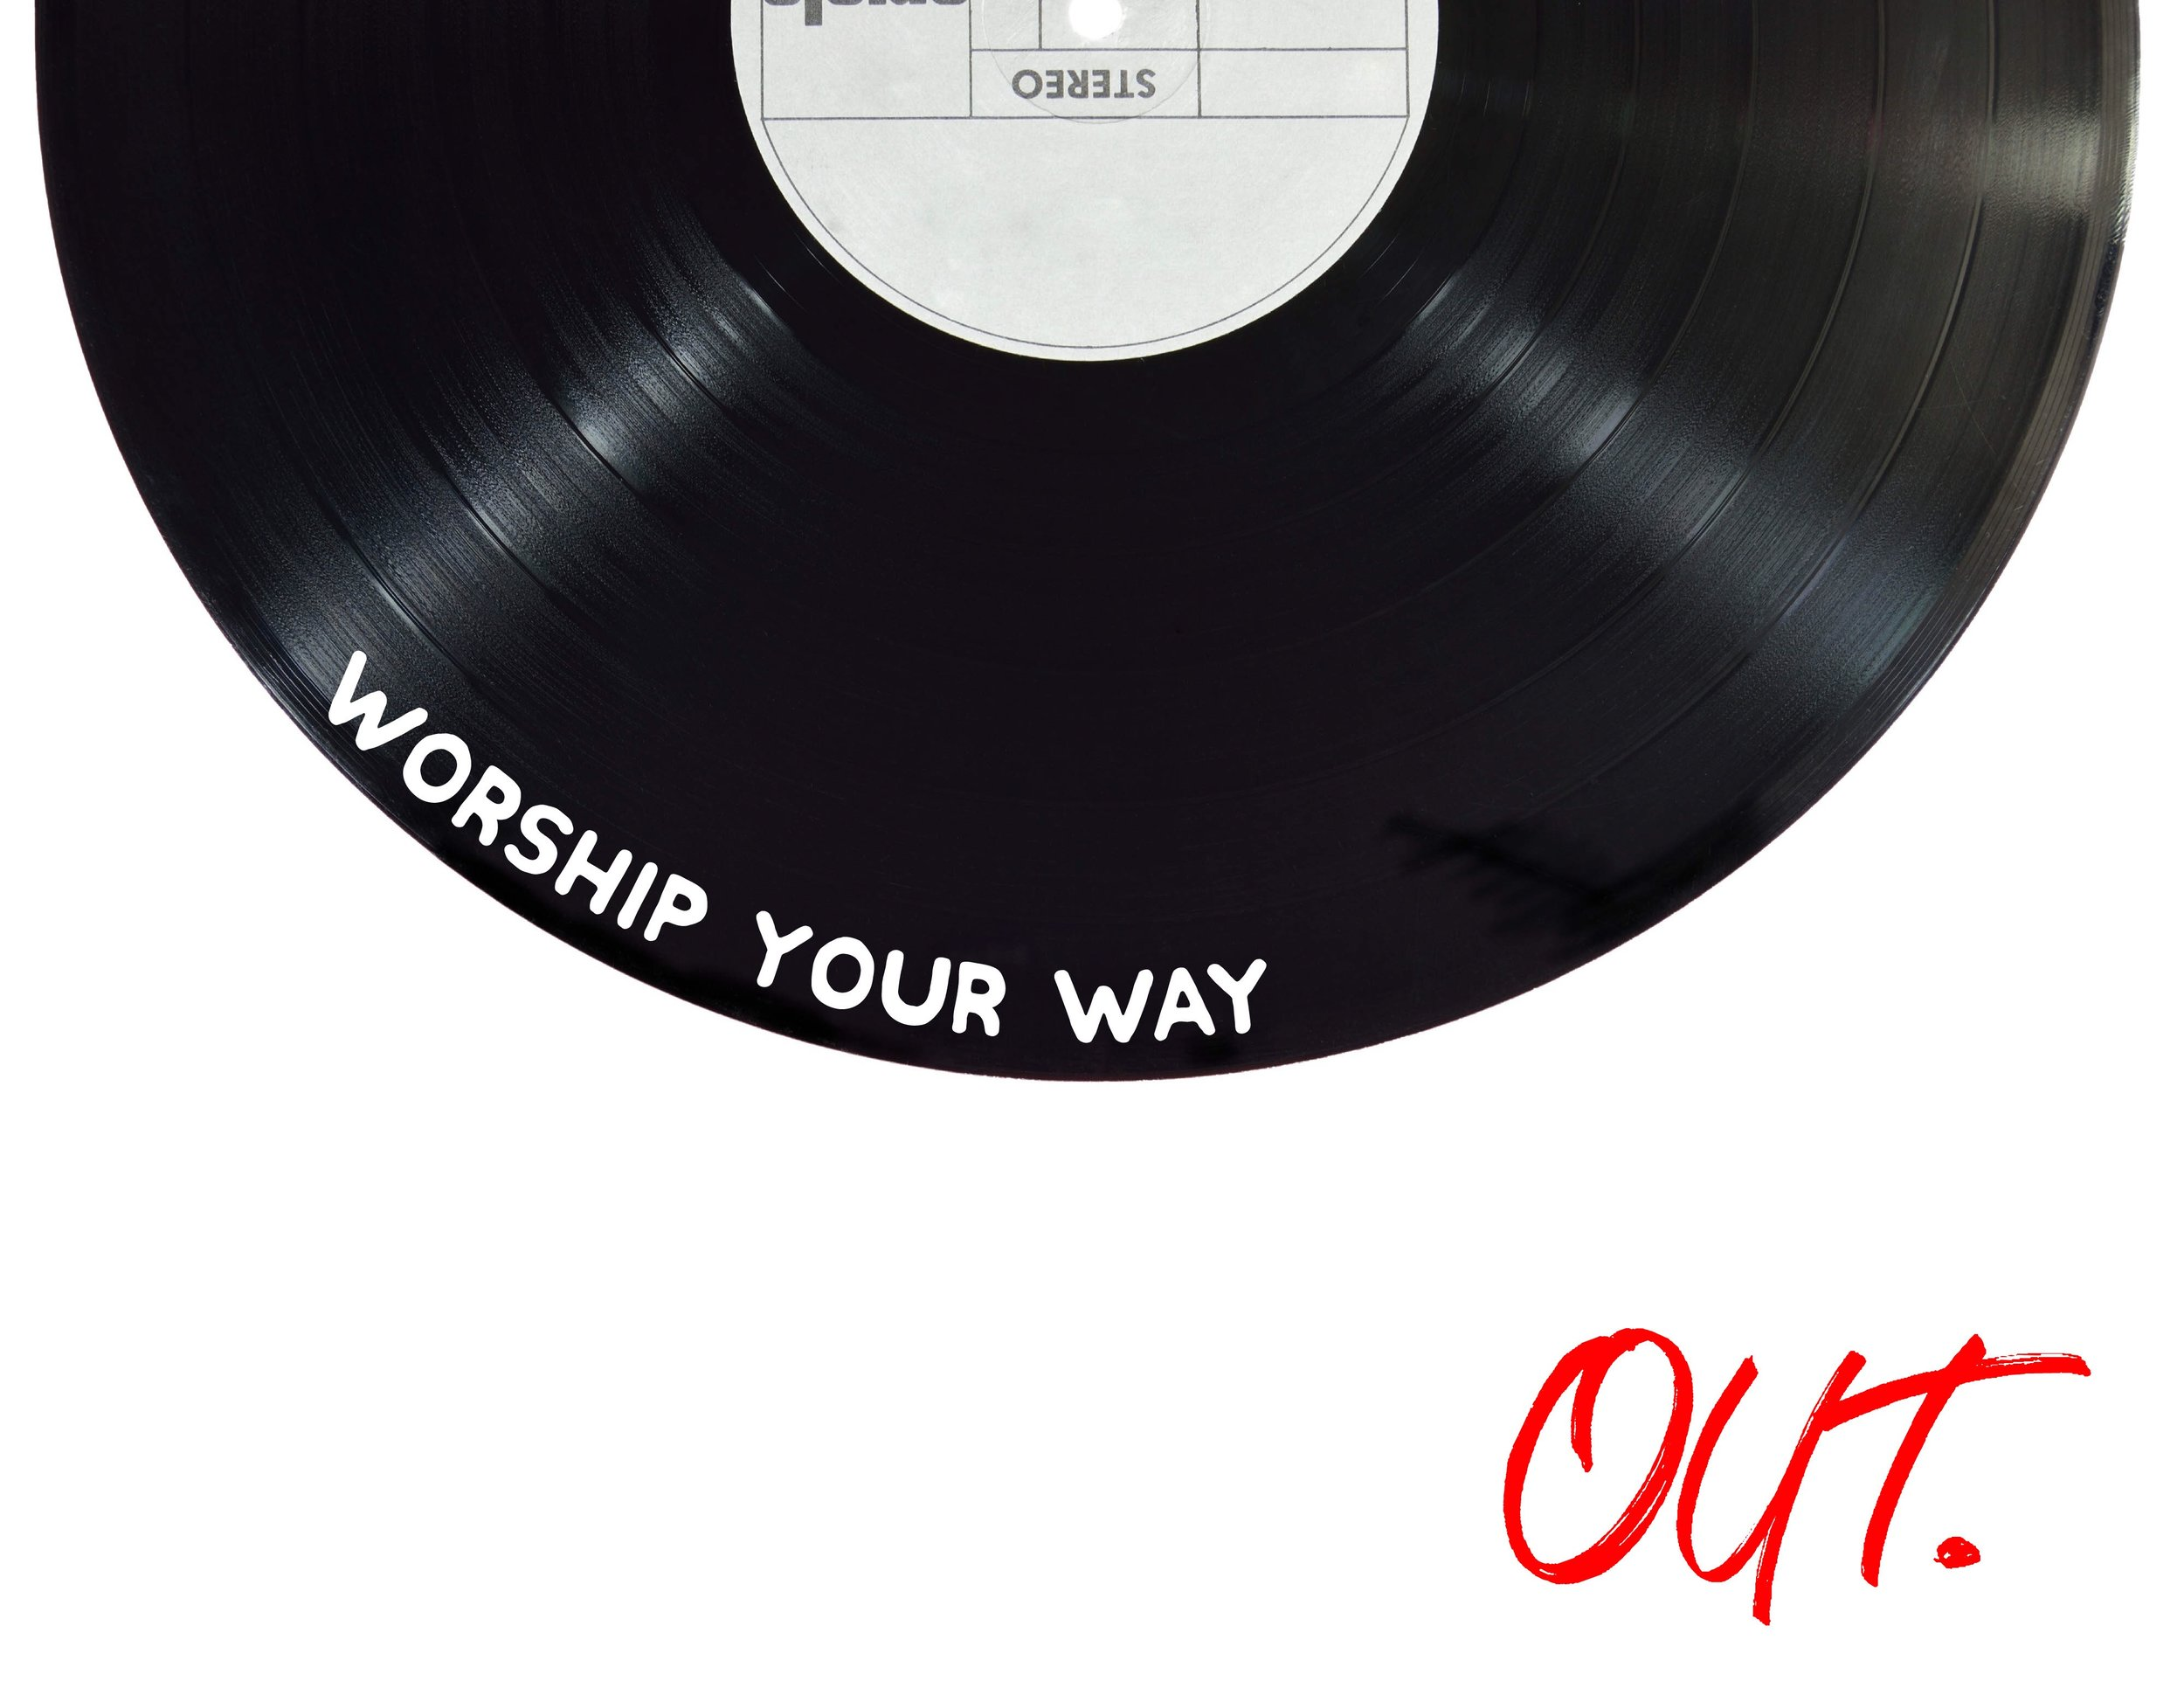 Worship Way Out.jpg